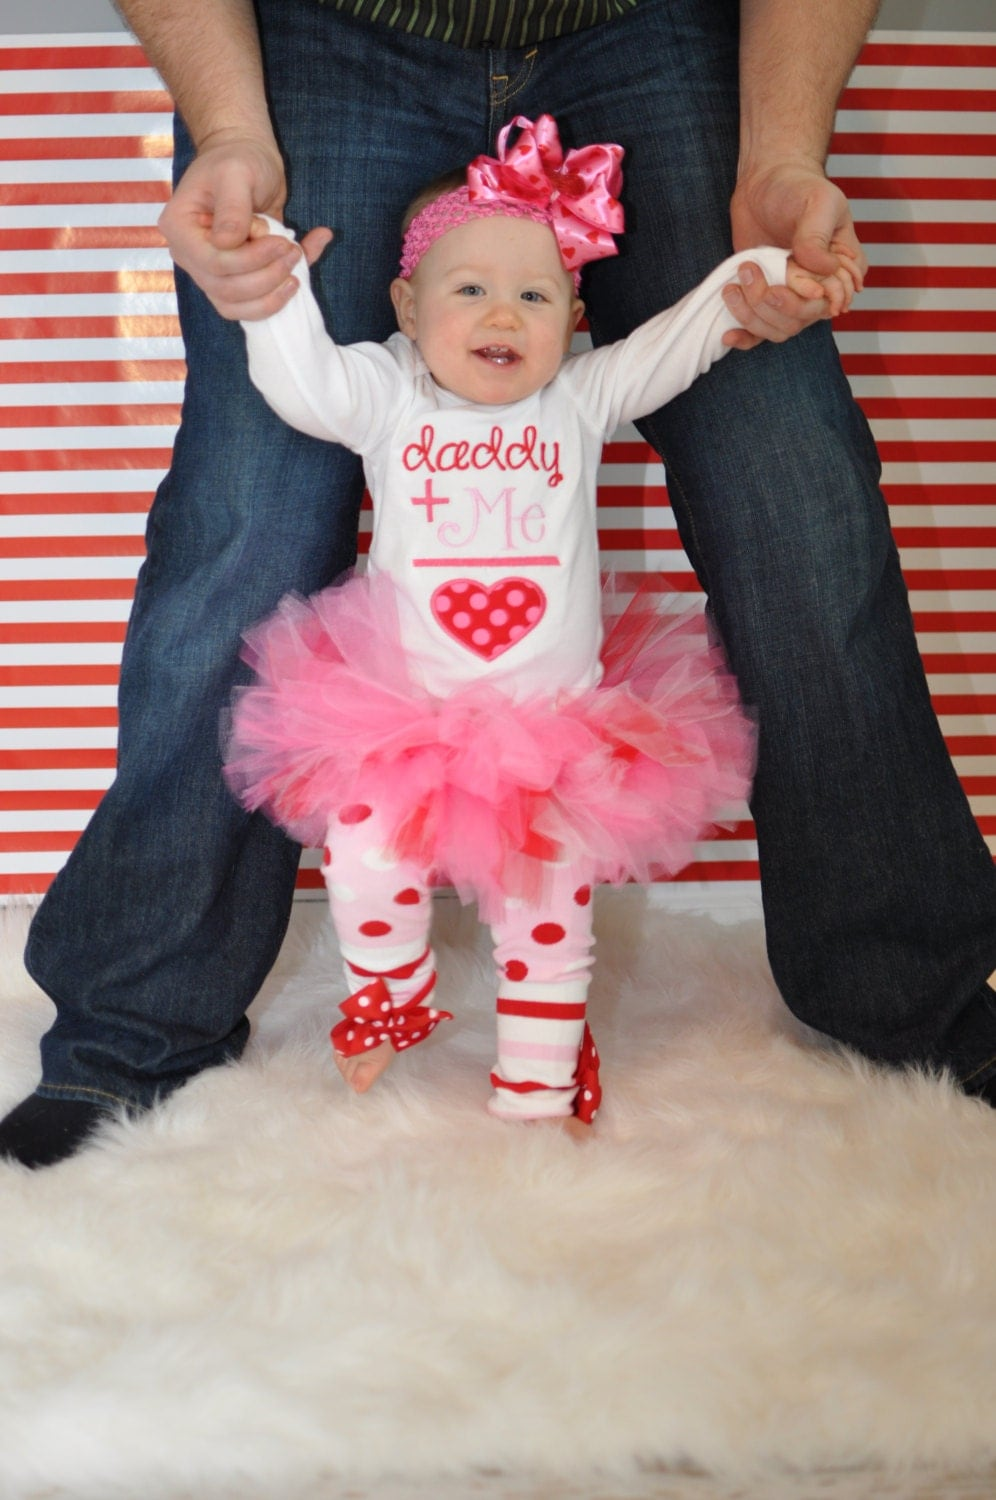 Baby Girl Tutu Outfit Daddys Girl Pink And Red